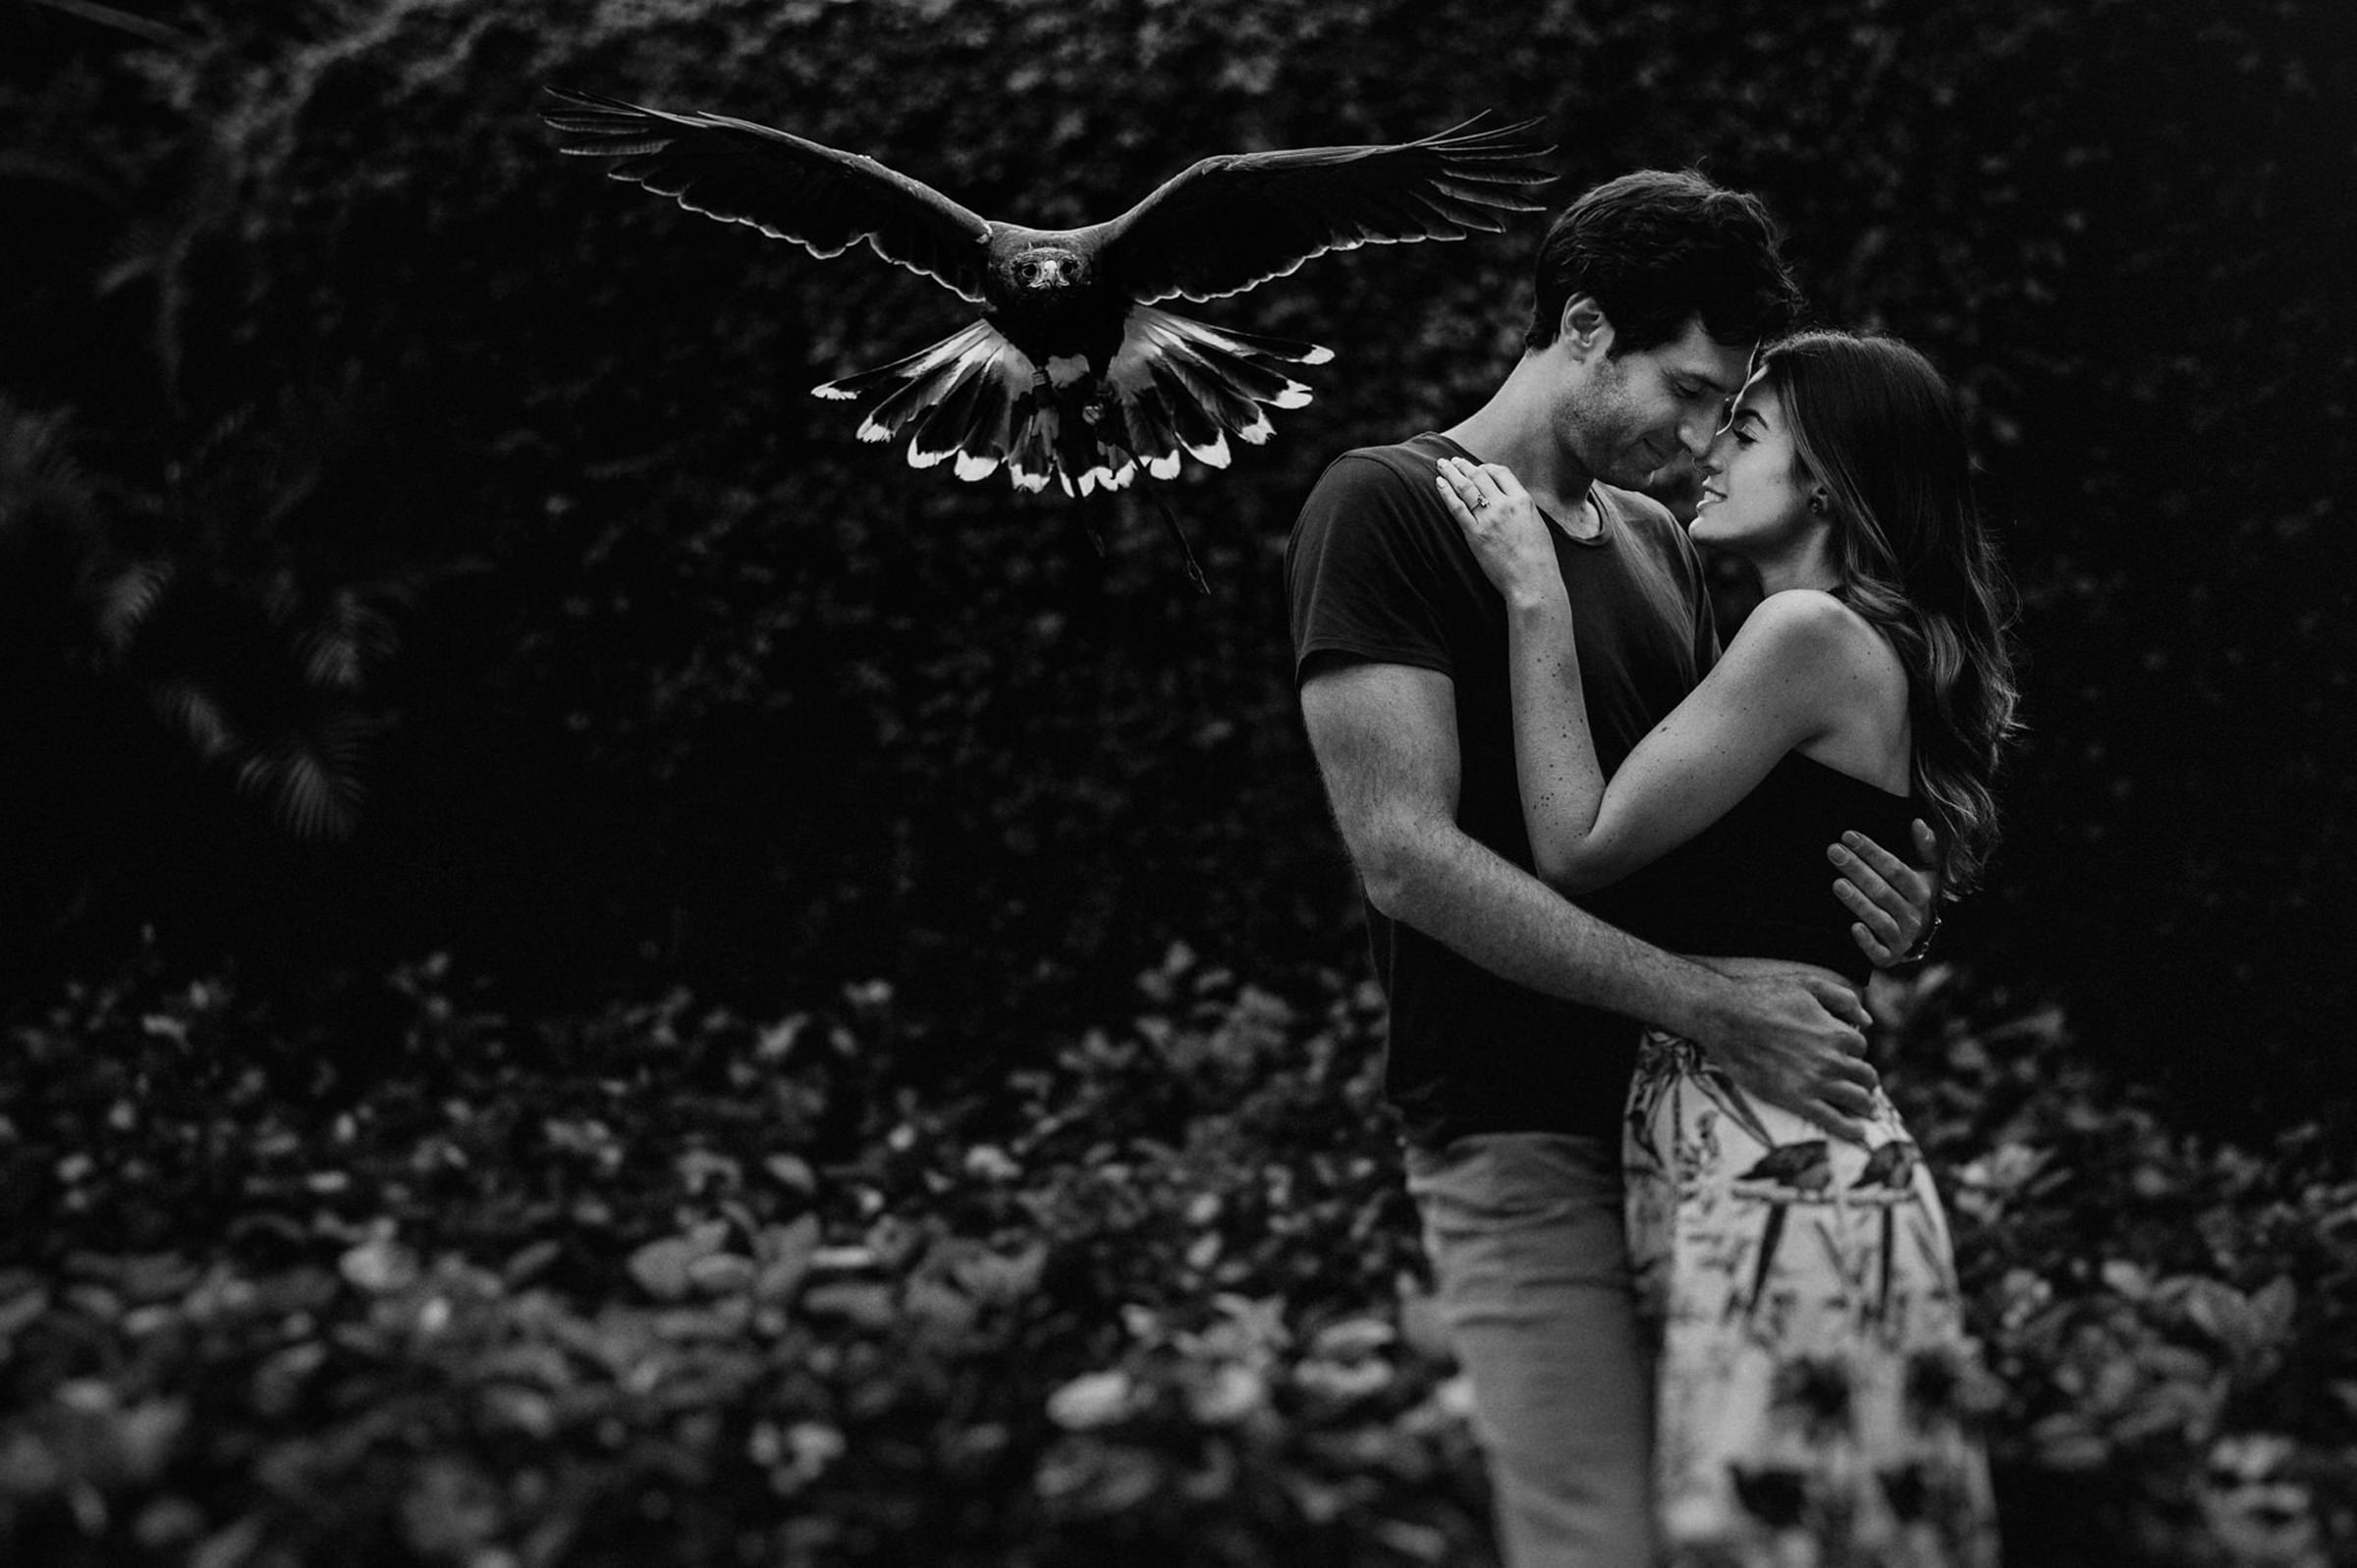 Couple with bird flying into camera - photo by Fer Juaristi